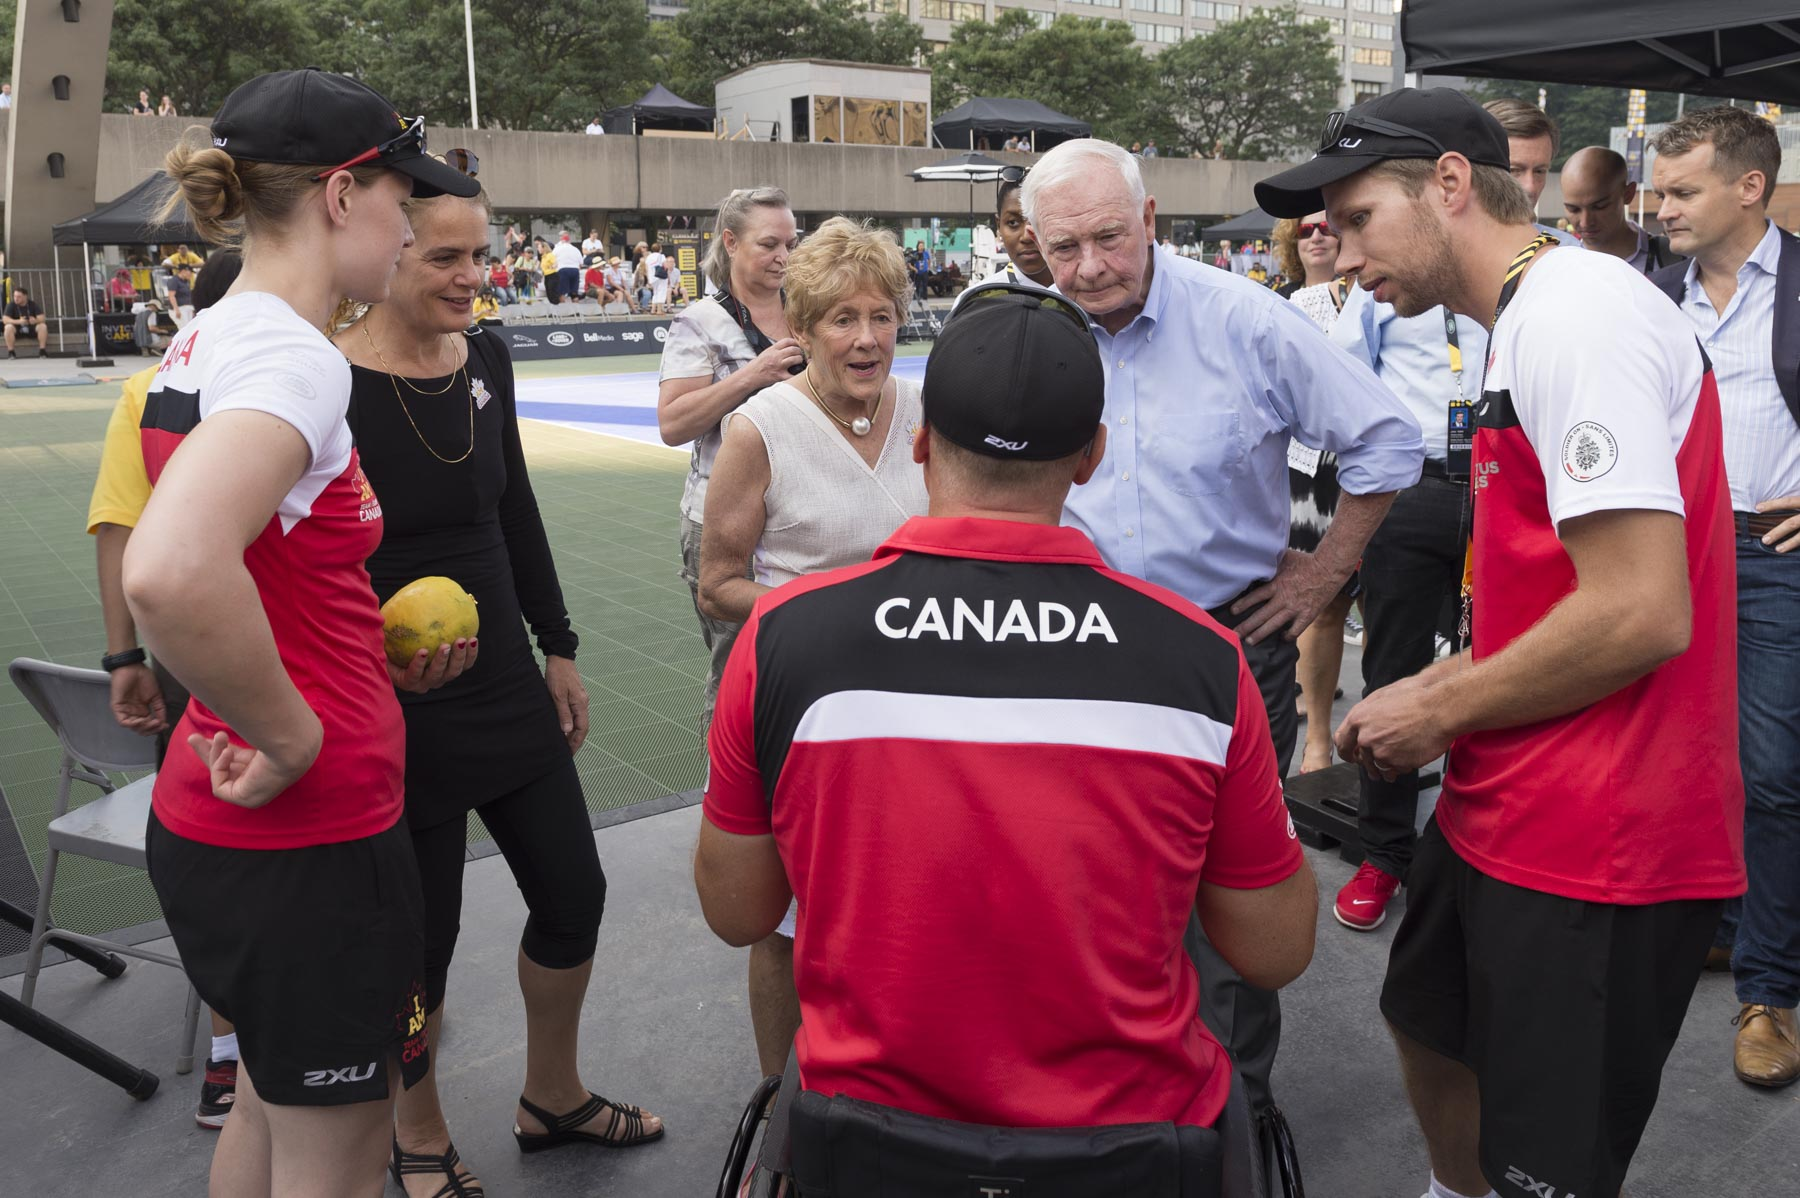 Their Excellencies and Governor General Designate Julie Payette attended the wheelchair tennis match between Canada and United Kingdom at Nathan Phillips Square. After the match, they met with Canadian competitors who were in good spirit despite their loss.